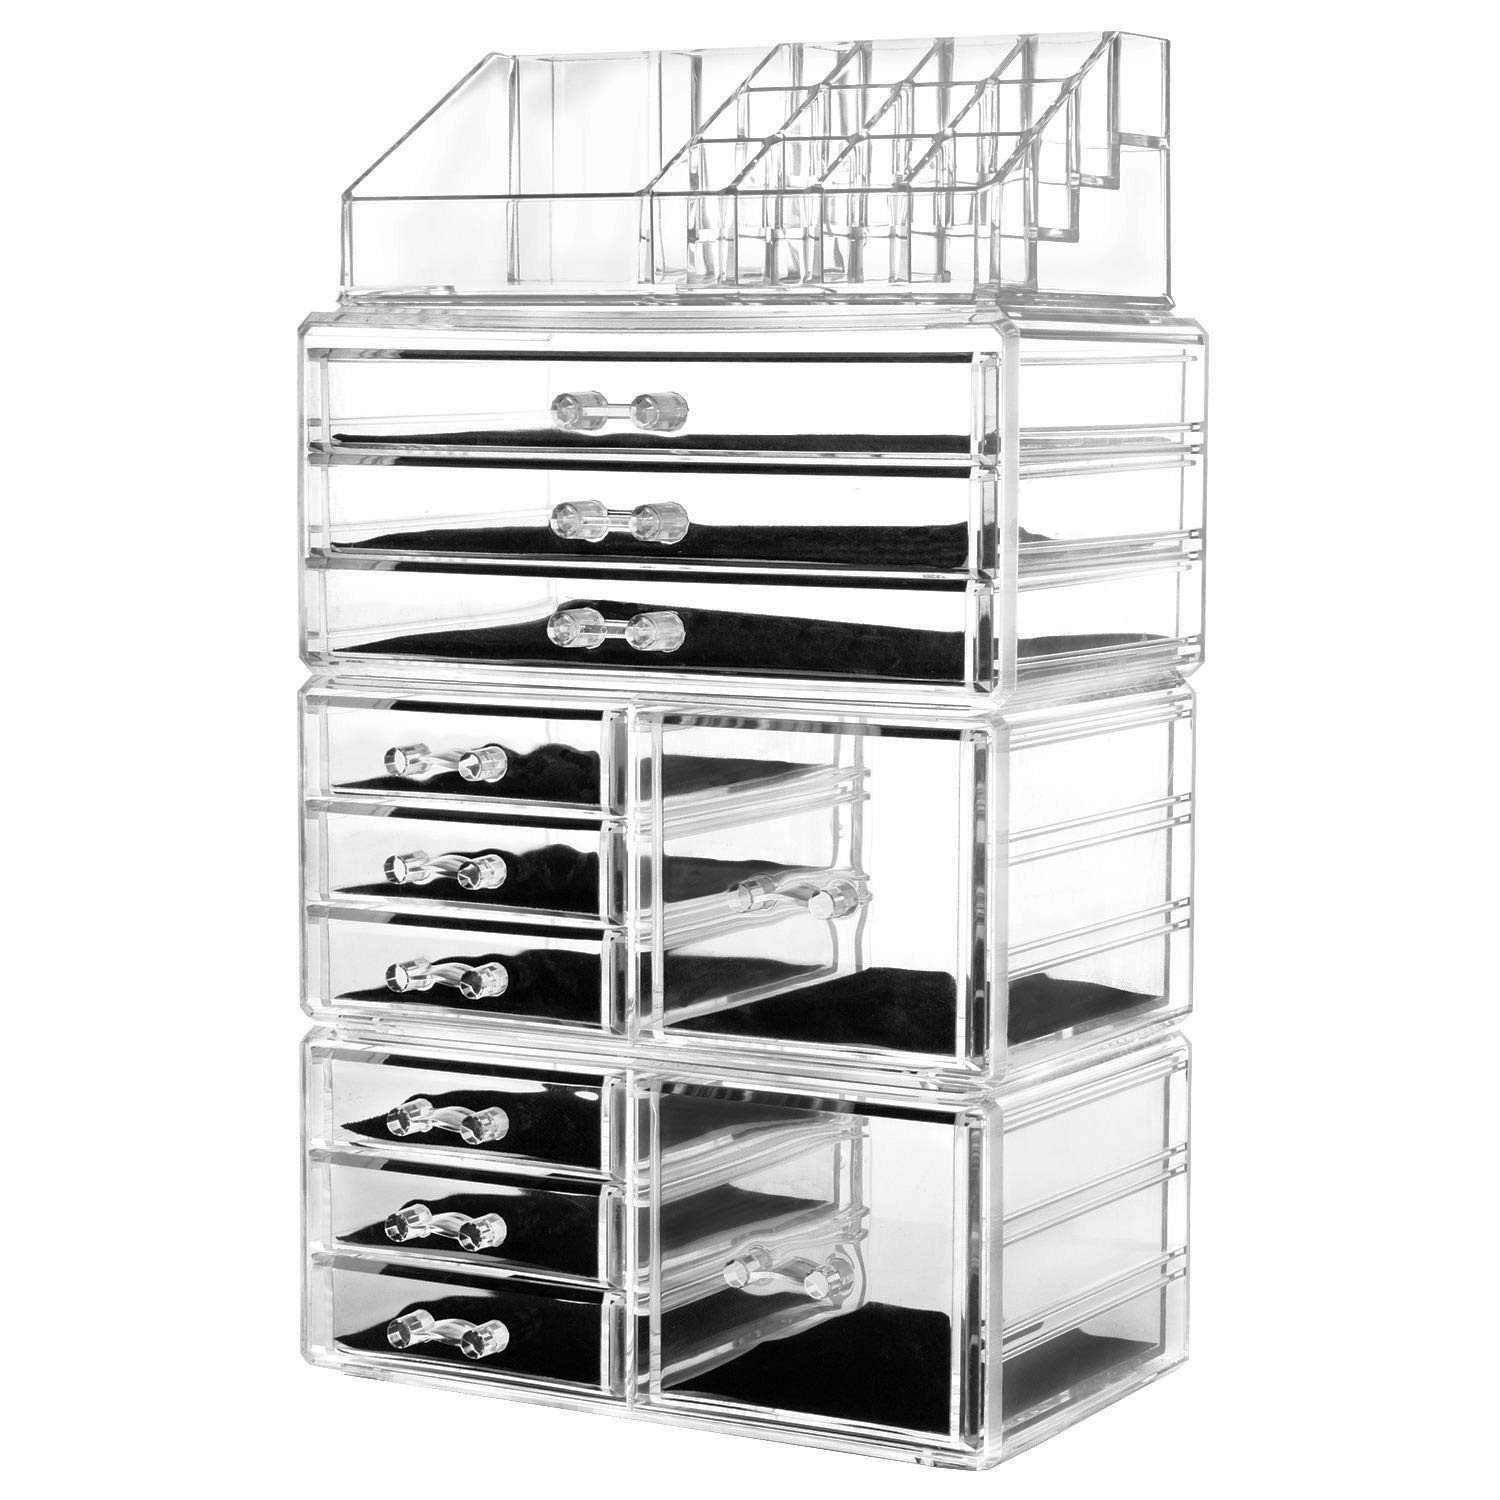 US Stock PEATAO 4Pcs/Set Acrylic Jewelry Cosmetic Storage Display Boxes Makeup Case - (6 Small, 2 Square, and 3 Large Drawers) for Bathroom, Dresser, Vanity, Countertop